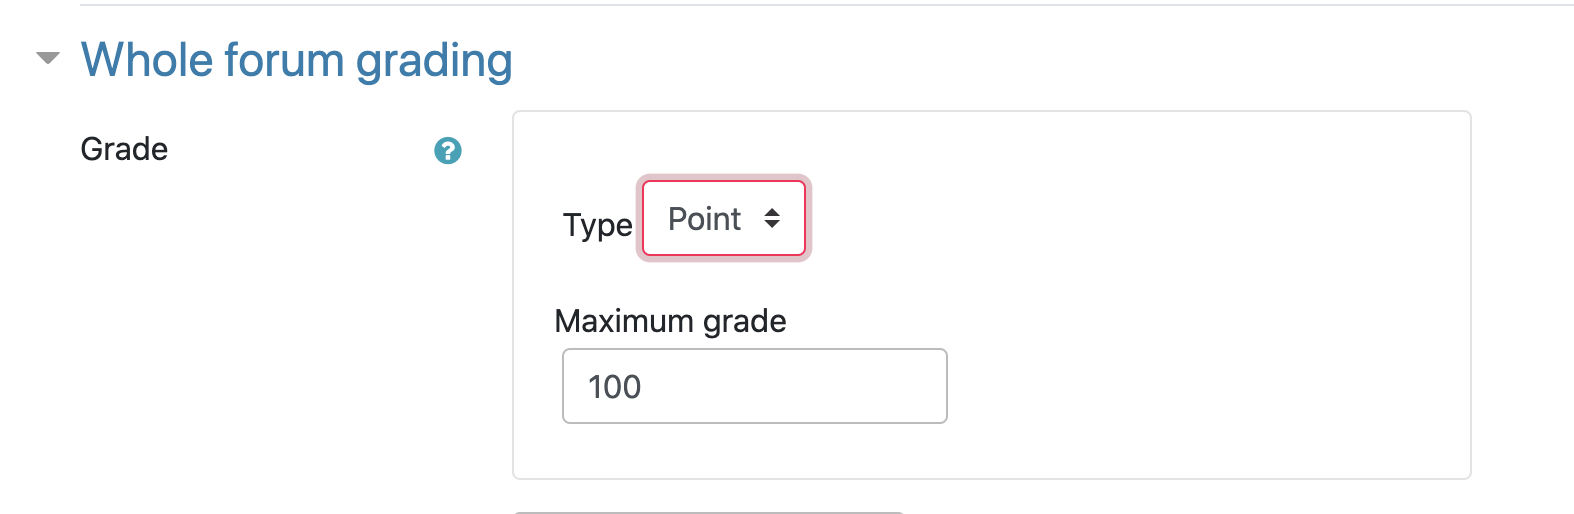 Whole forum grading section in the activity settings for Moodle forum